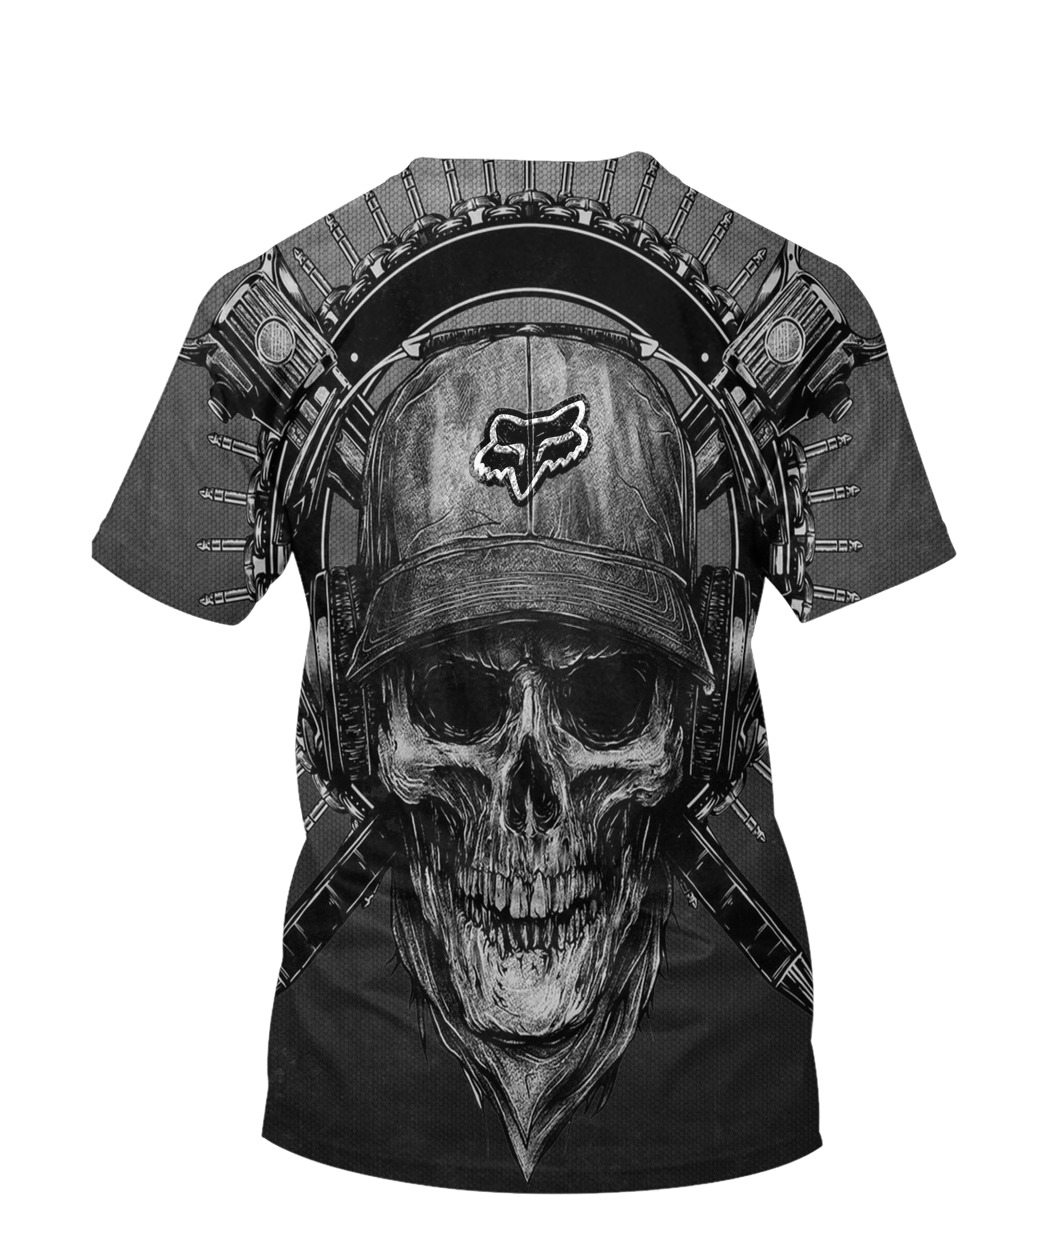 Terror noise division fox racing all over print tshirt - back